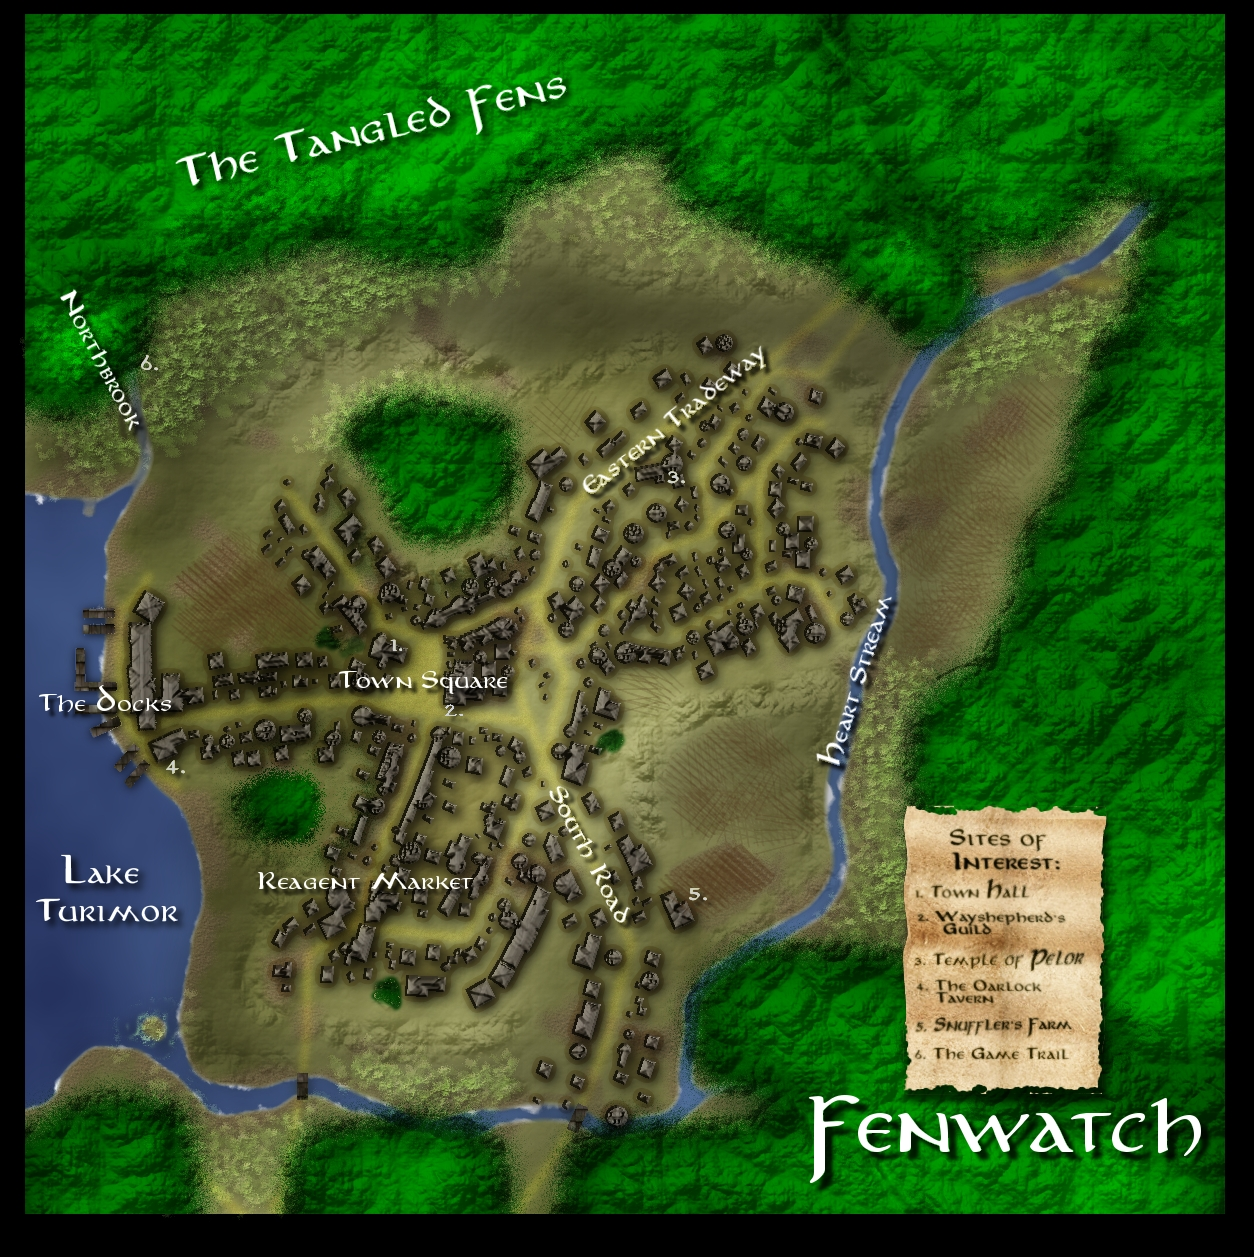 Fenwatch: The town of Fenwatch is a border town and key layover stop on the Eastern Tradeway running from the kingdom of Turimor over the Cloud Peak mountains and across the wastes beyond.